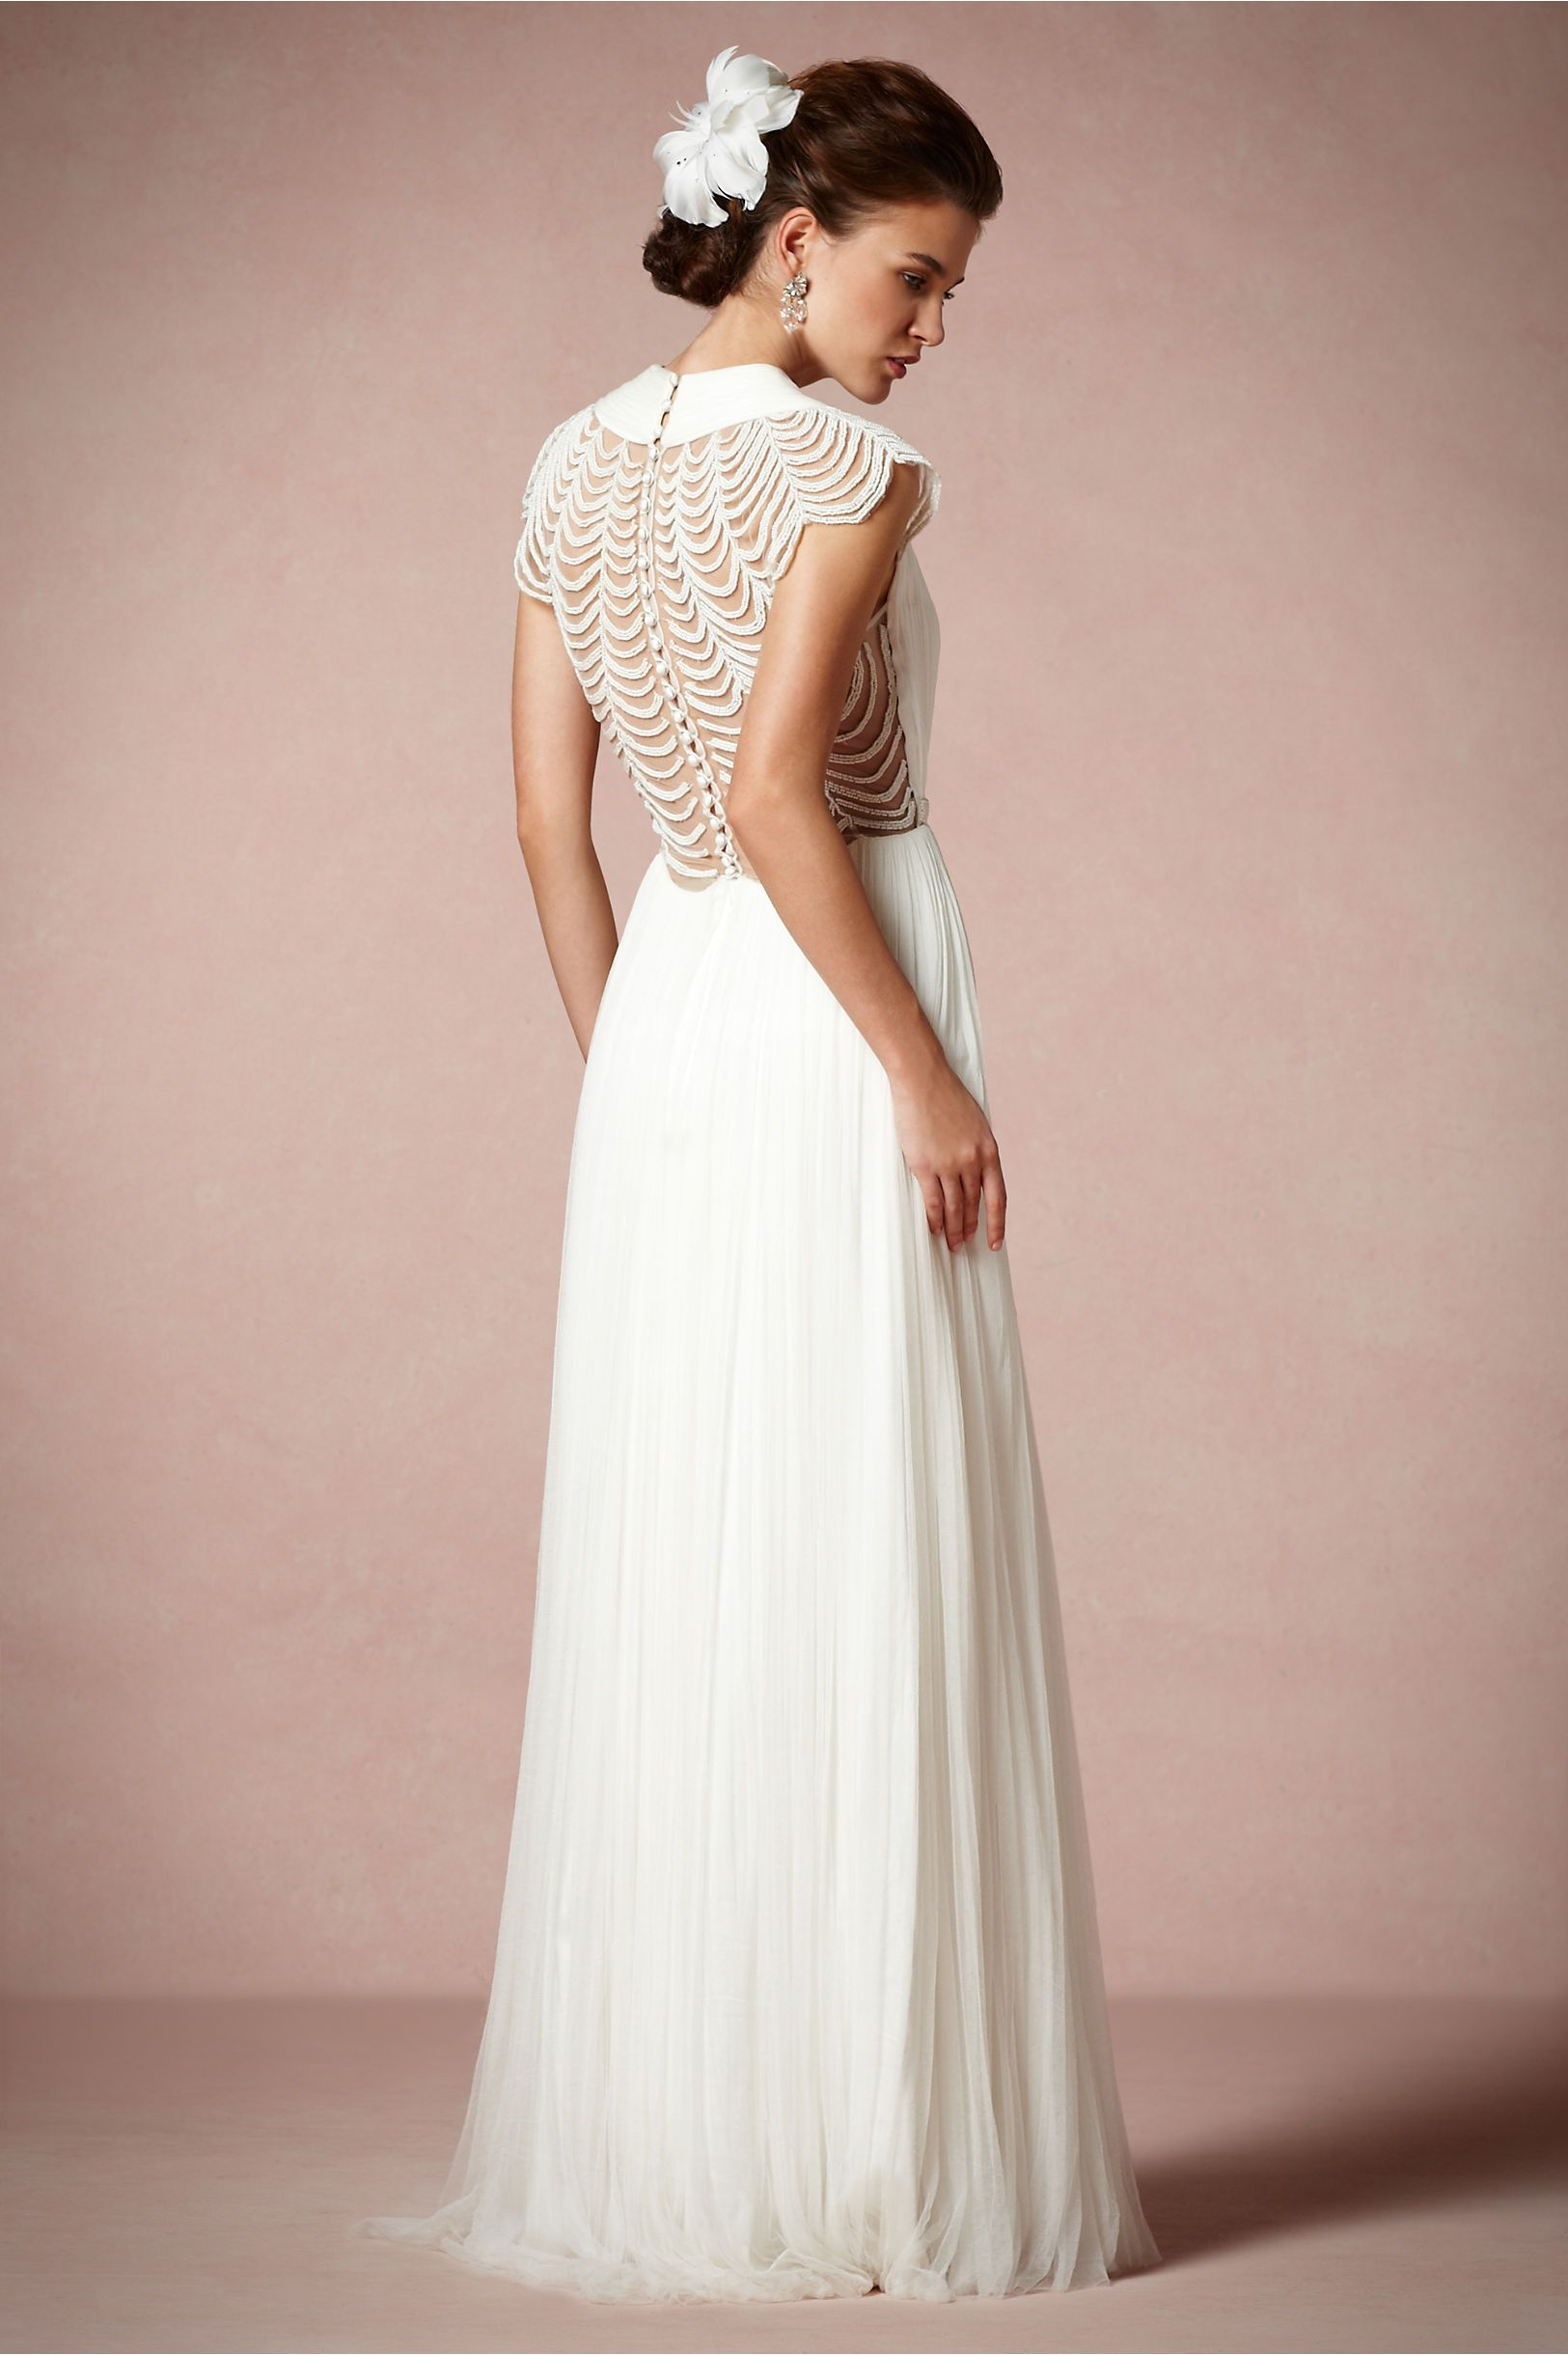 Ortensia Gown from BHLDN | MyWedding | Pinterest | Vestidos novia ...